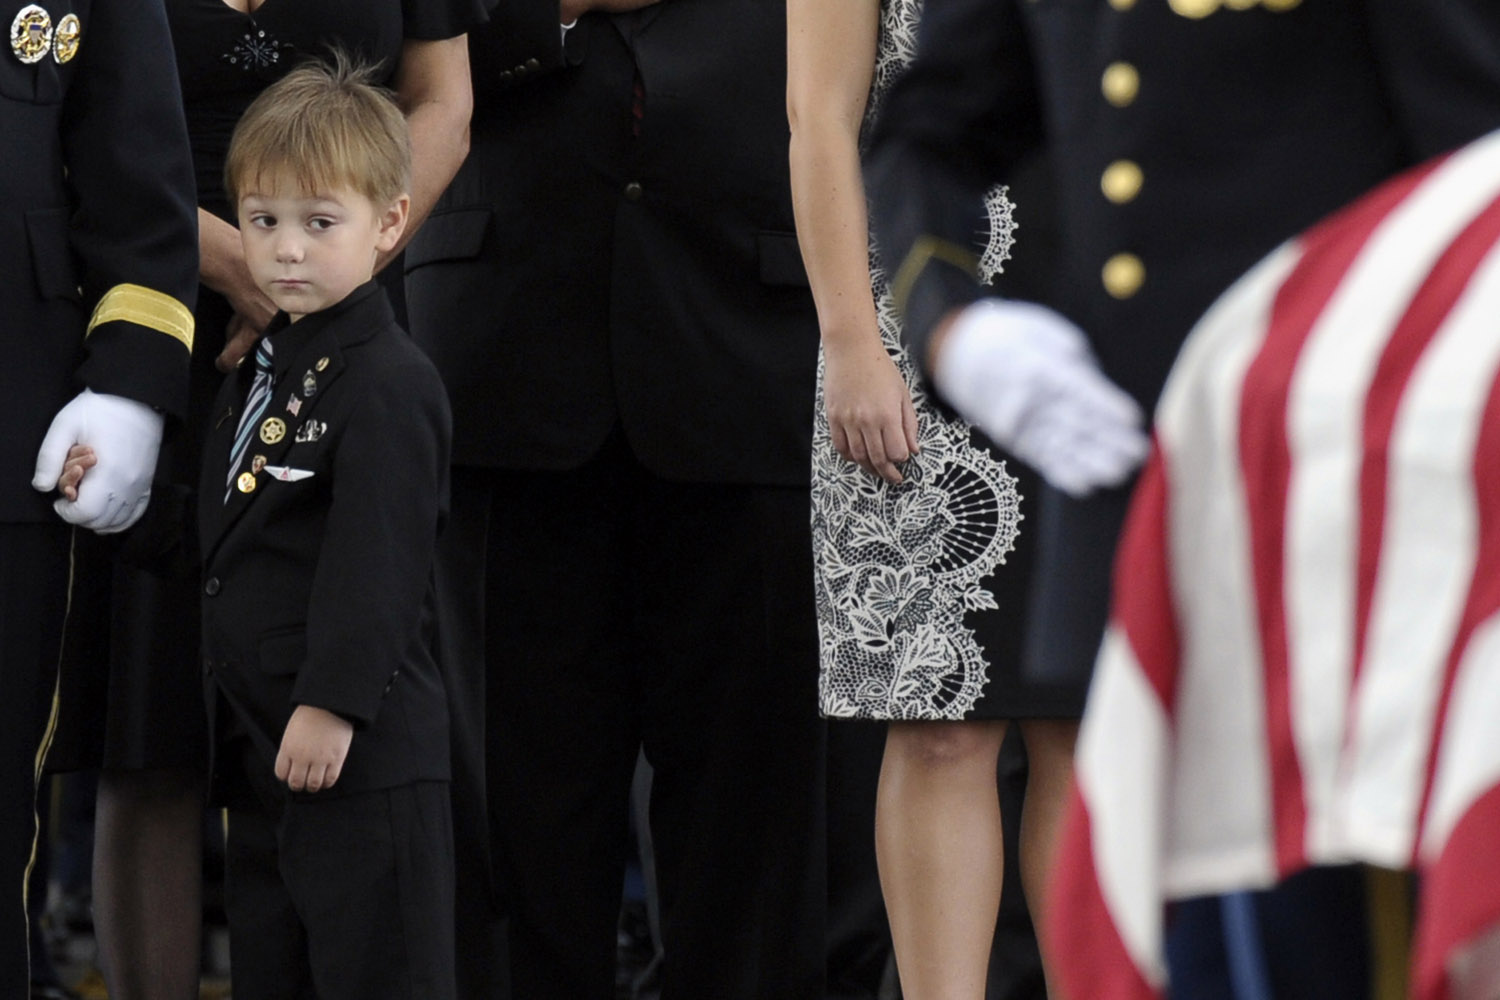 Sept. 27, 2013. Kaden Bowden, son of U.S. Army Staff Sgt. Joshua J. Bowden, looks at the casket for his father during burial services for Staff Sgt. Bowden at Arlington National Cemetery in Arlington, Va.